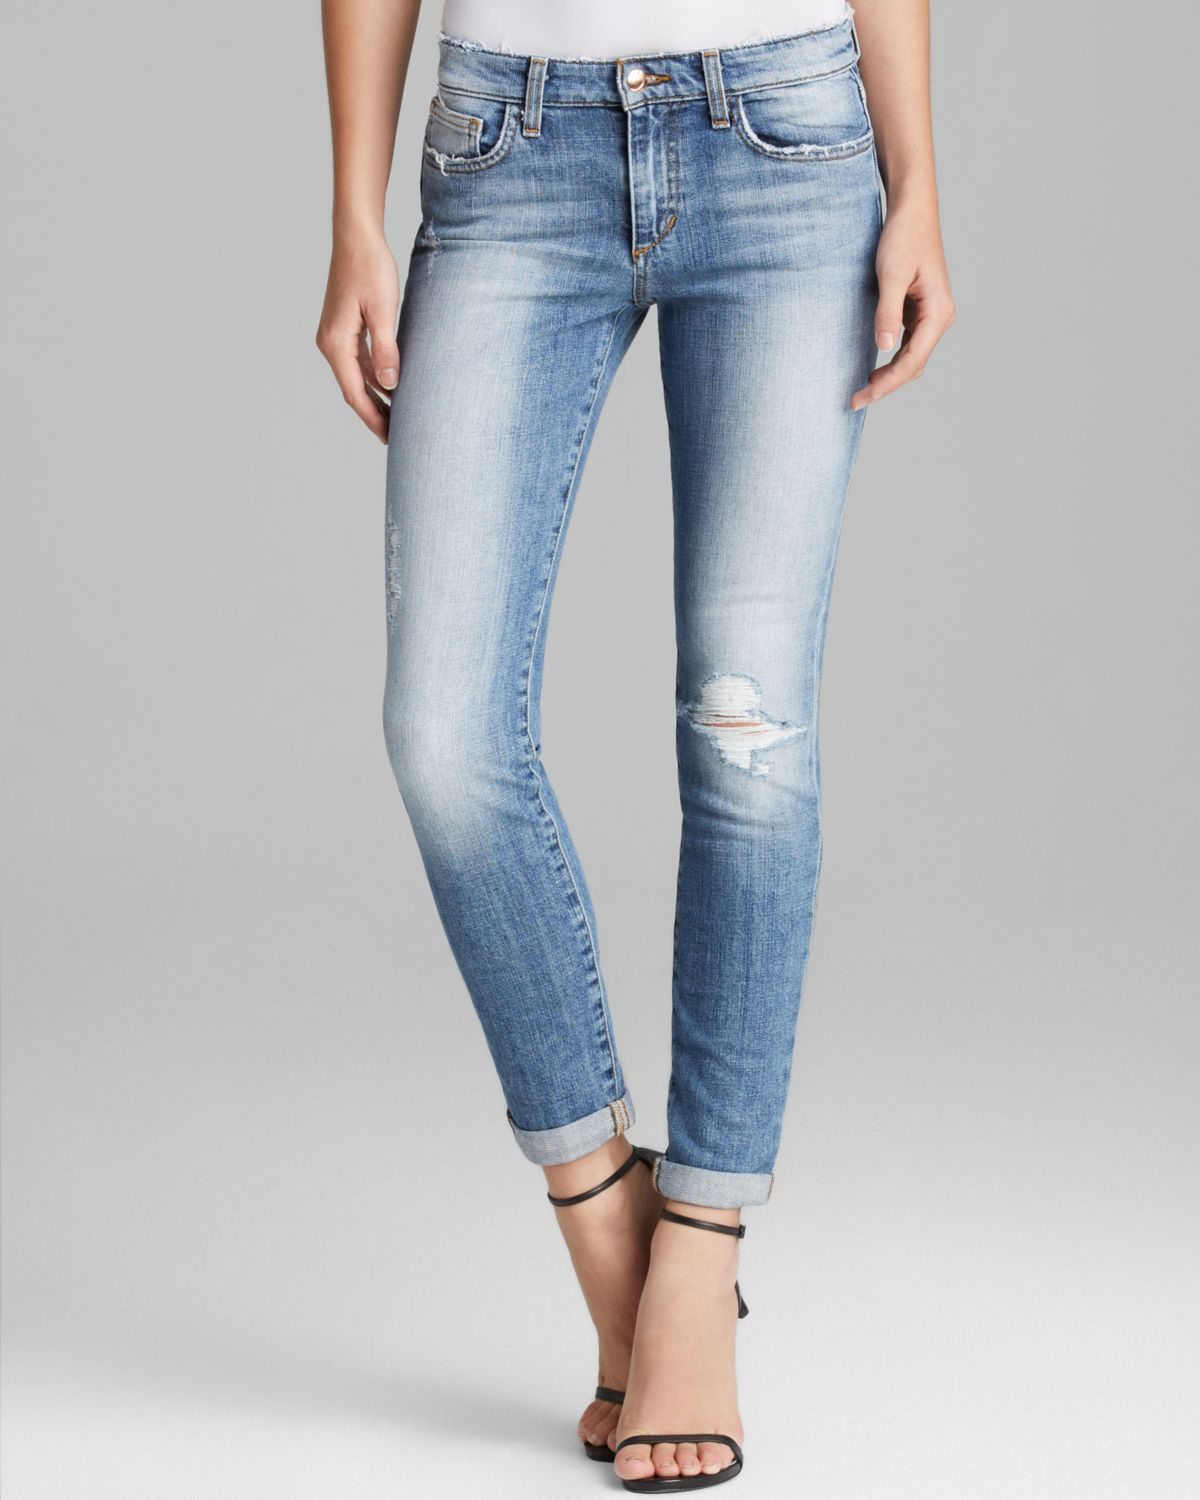 Joes Jeans The Wasteland Ankle Jeans In Mimi In Blue